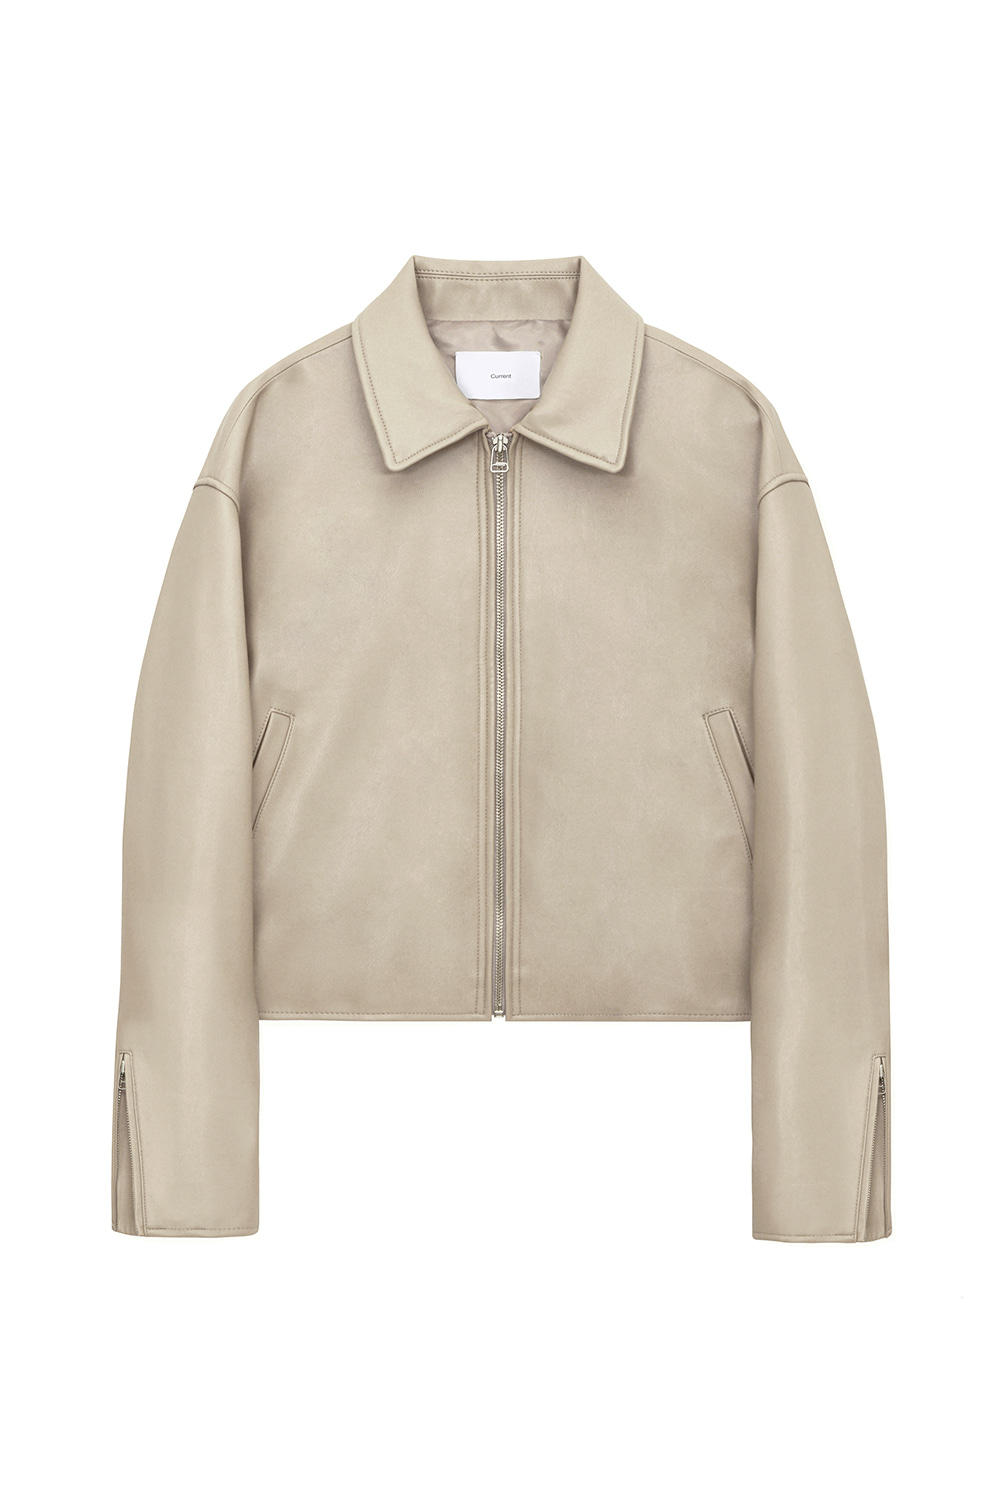 Single Leather Jacket Women JA [Beige] -10%